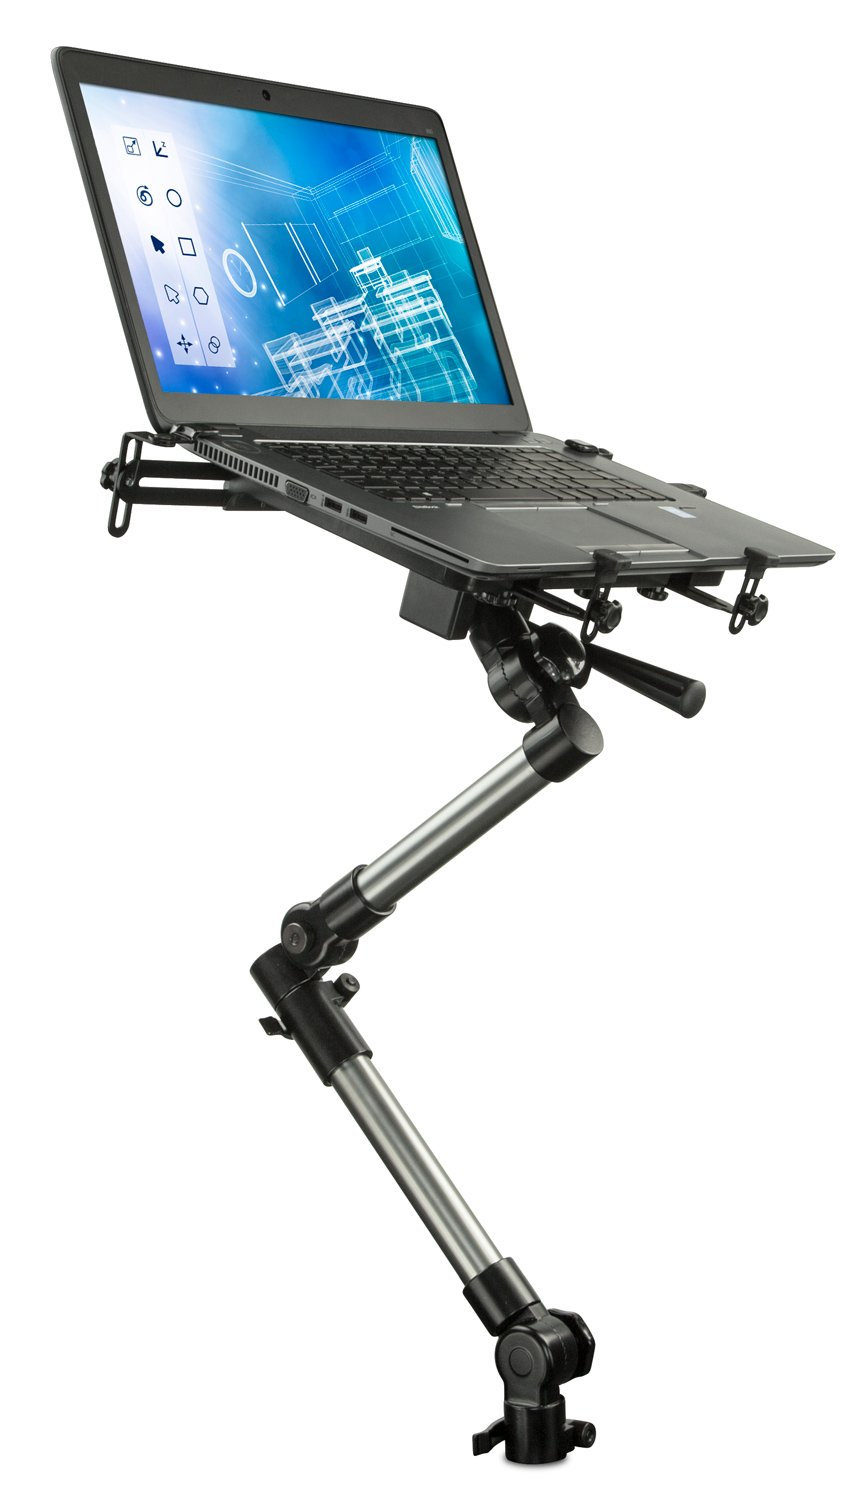 Mount-It! MI-526 Car Laptop Mount Notebook Tablet Holder for Commercial Vehicles, Trucks Fits iPad and Other Tablet Computers, Heavy-Duty Design with Full Motion Tray, Extendable Arms, Lockable Arm by Mount-It!